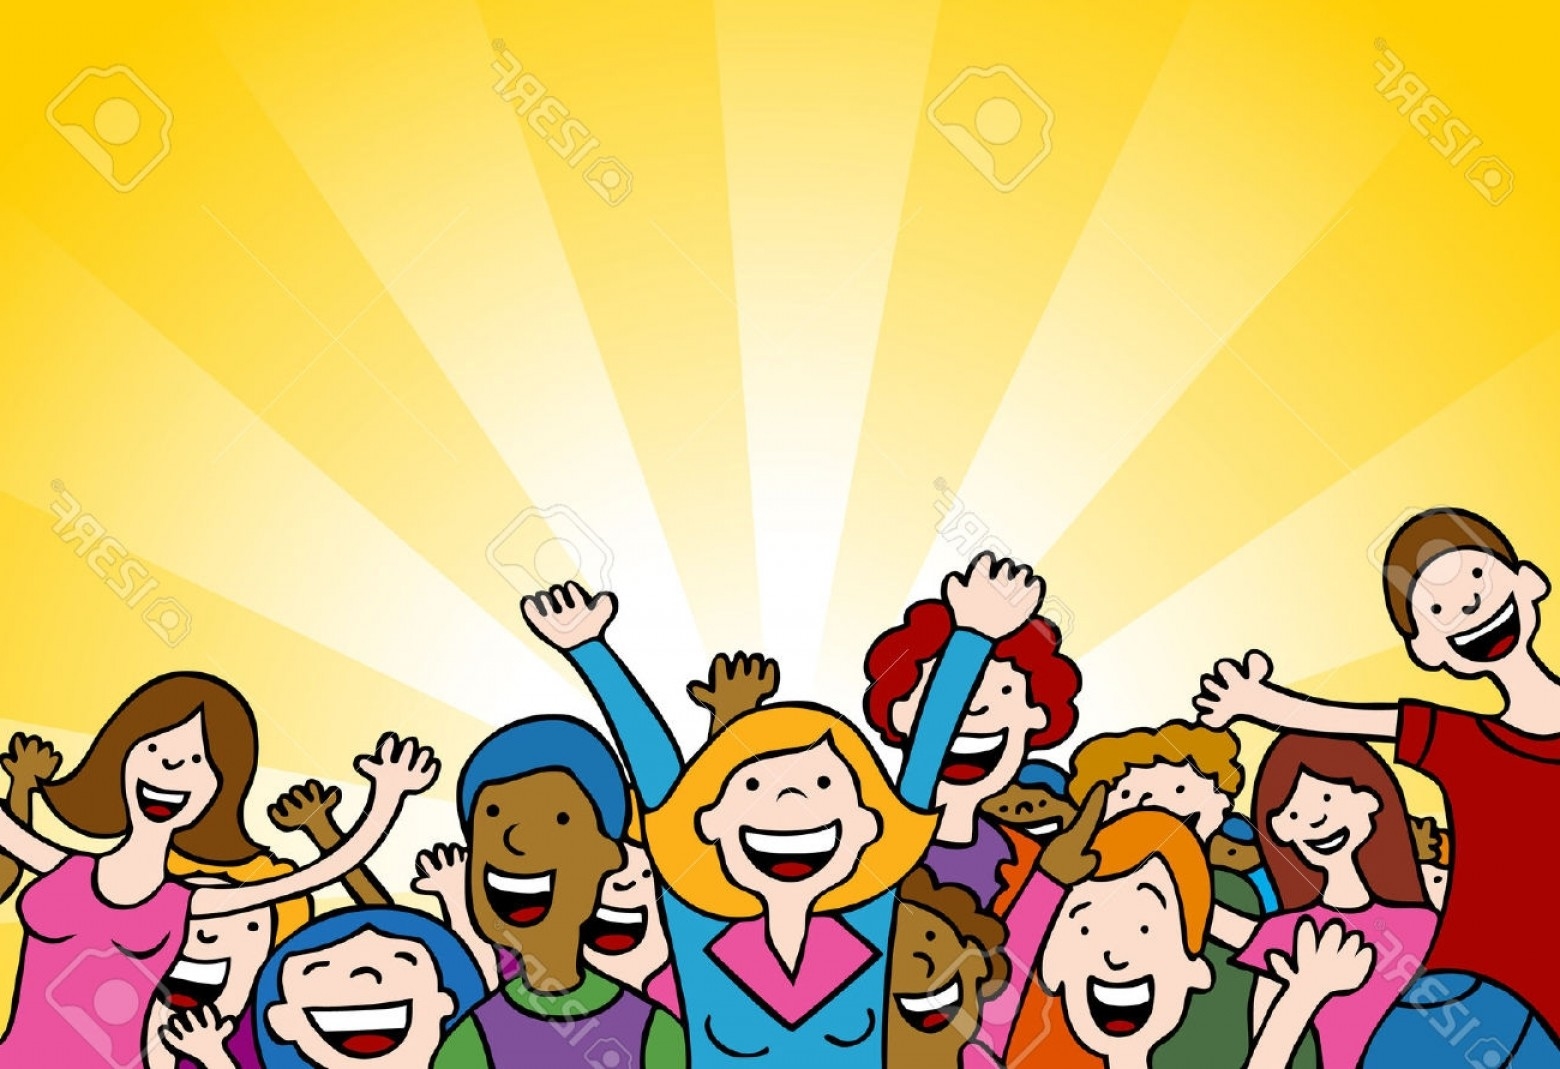 Fans clipart audience applause Crowd Cheering collection clipart clipart